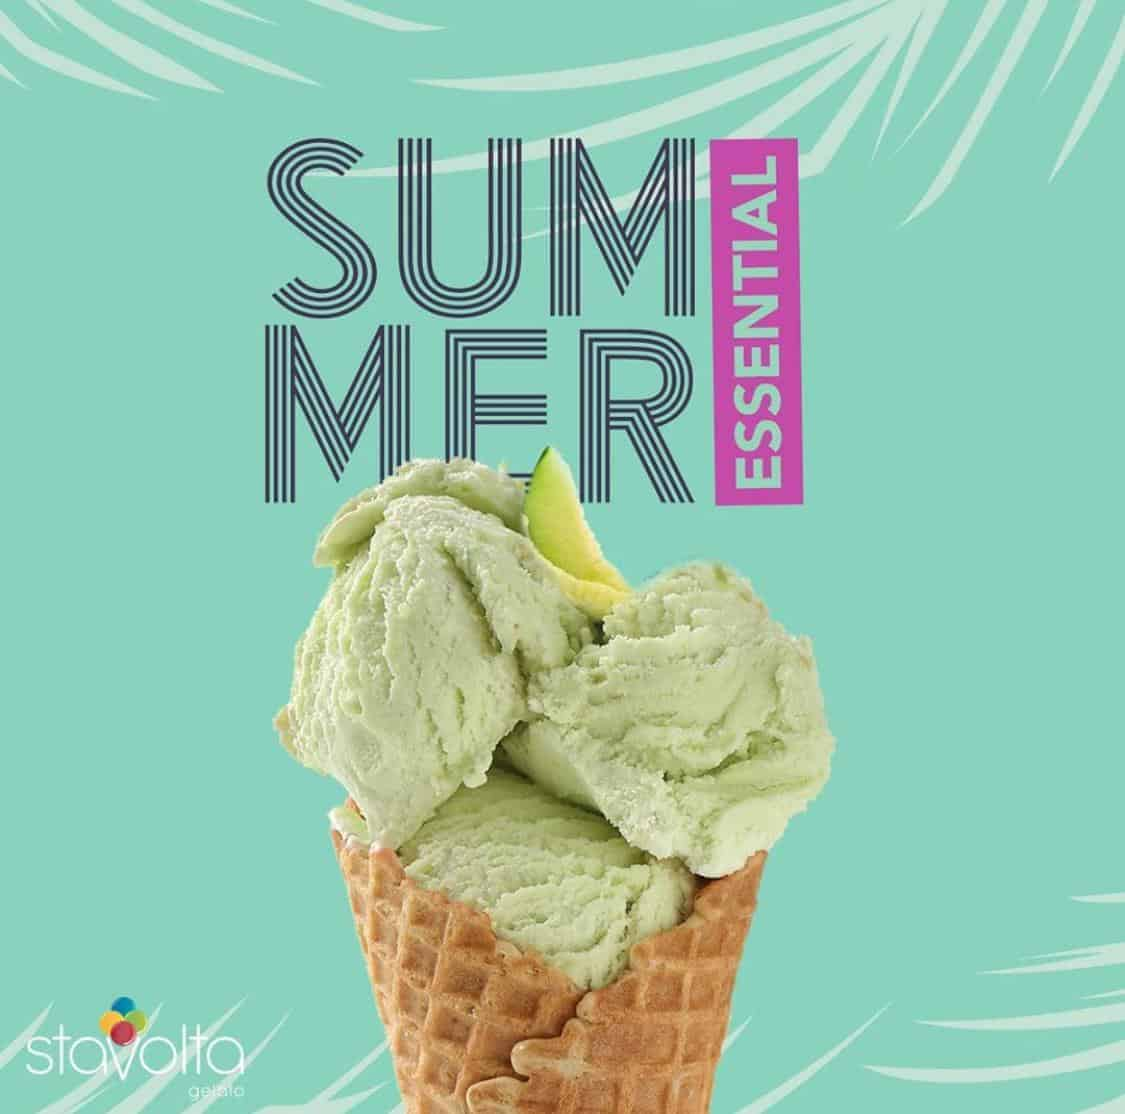 Cone it in Summer: 10 Best Ice Cream Places in Egypt